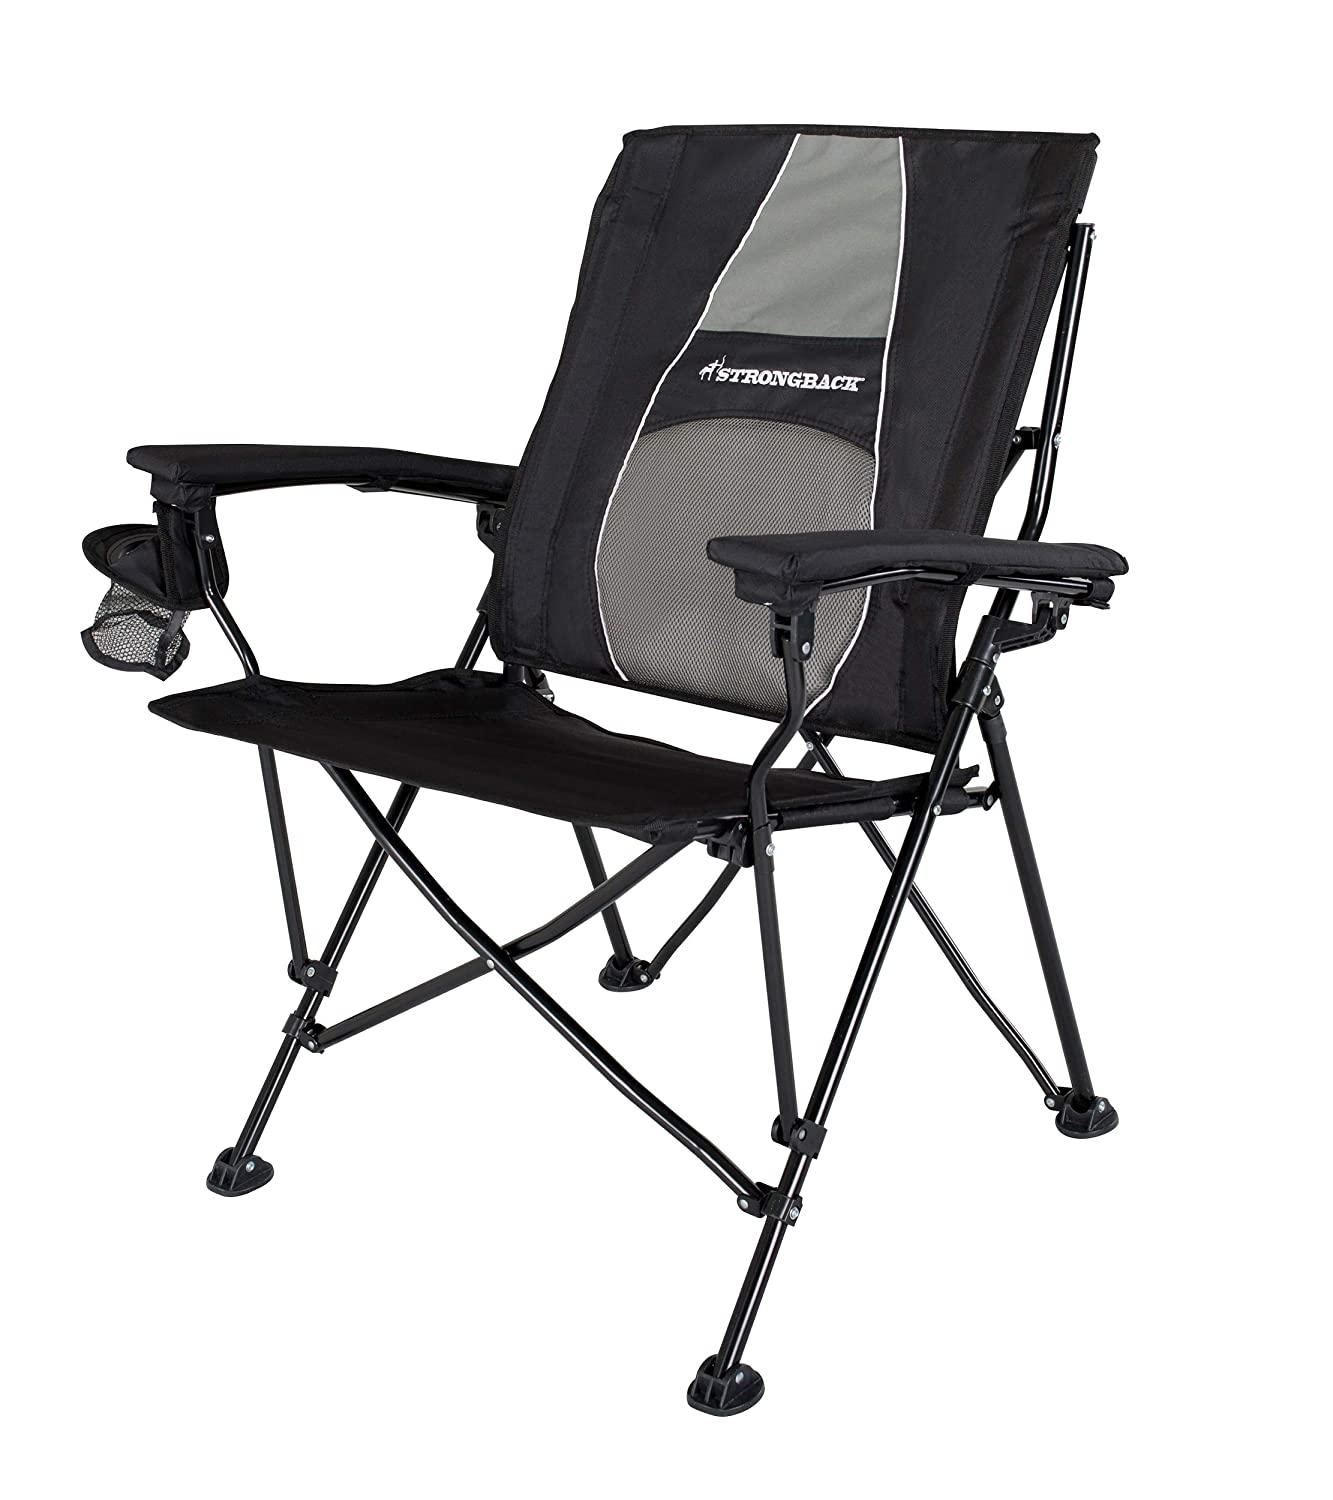 Elite Folding Camping Chair with Lumbar Support